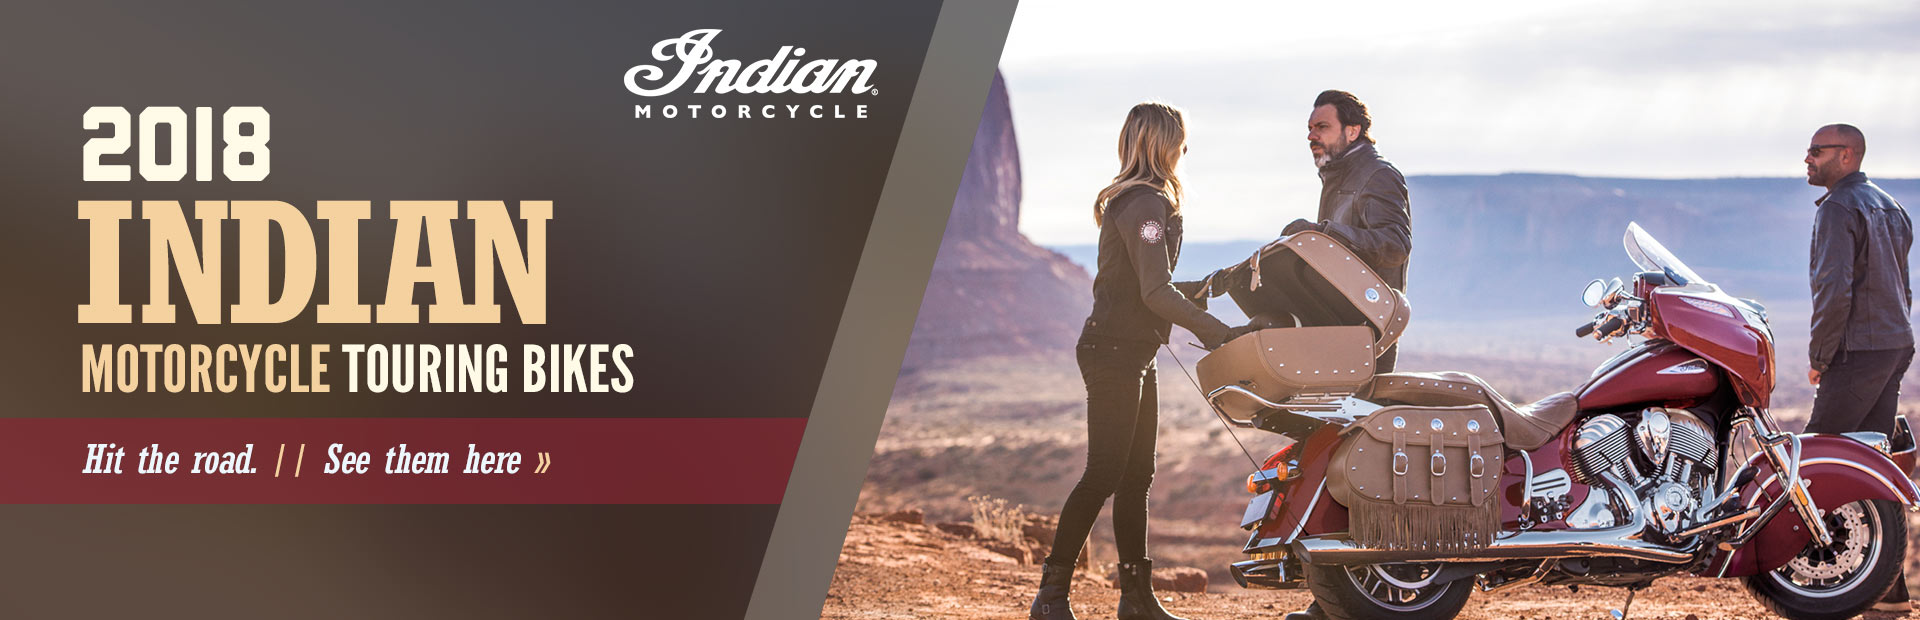 2018 Indian Motorcycle Touring Bikes: Click here to view the models.